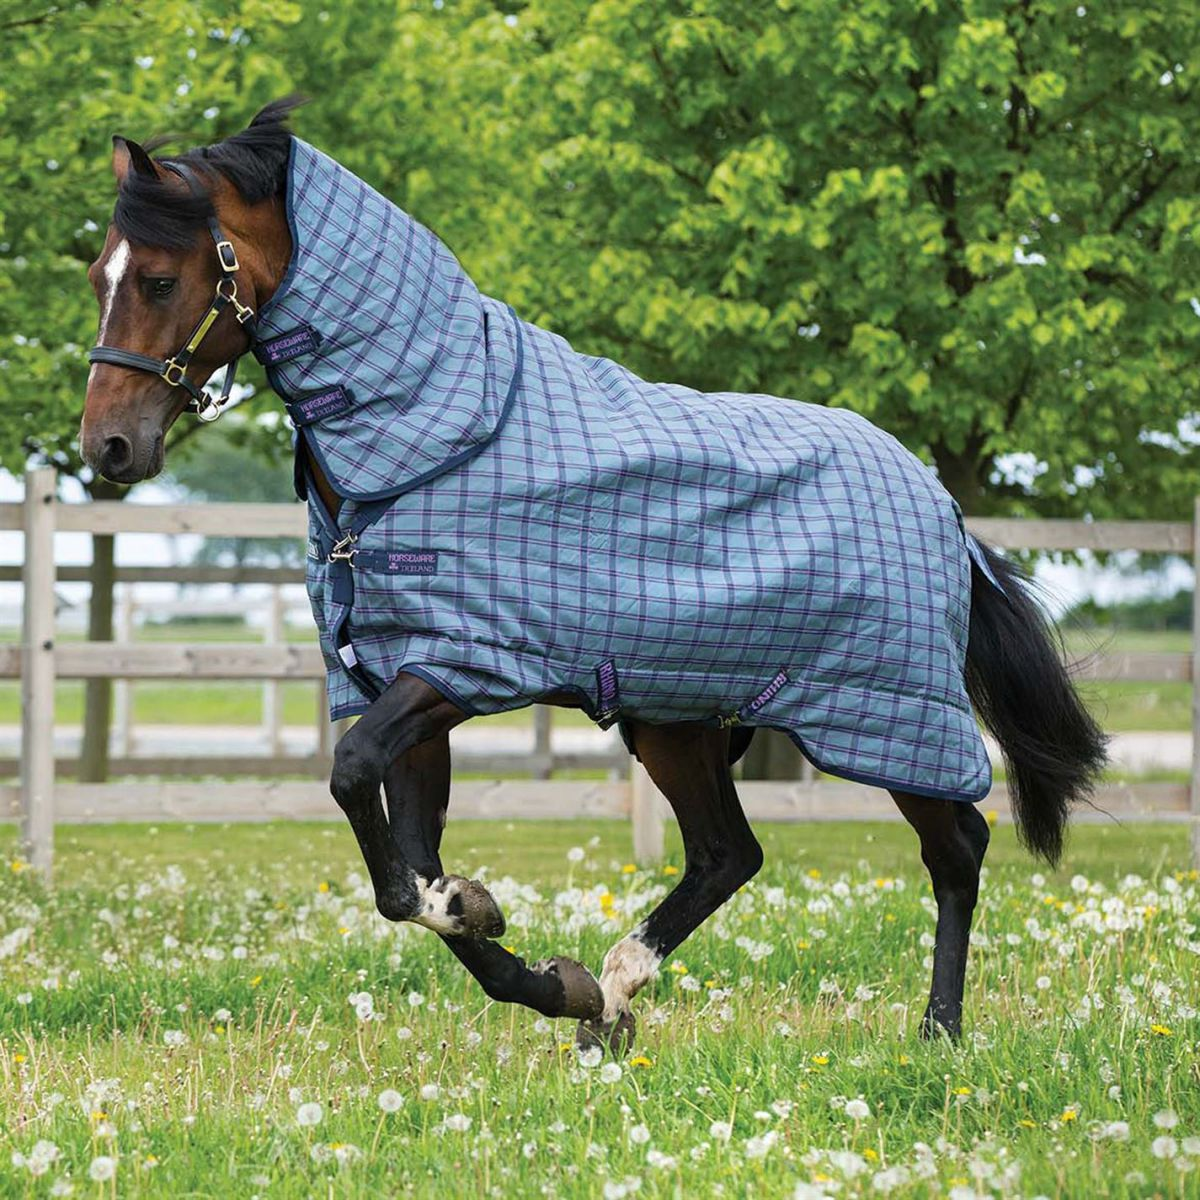 Rhino Plus Medium 200g Horse Rug Waterproof Breathable Hooded Robinsons New